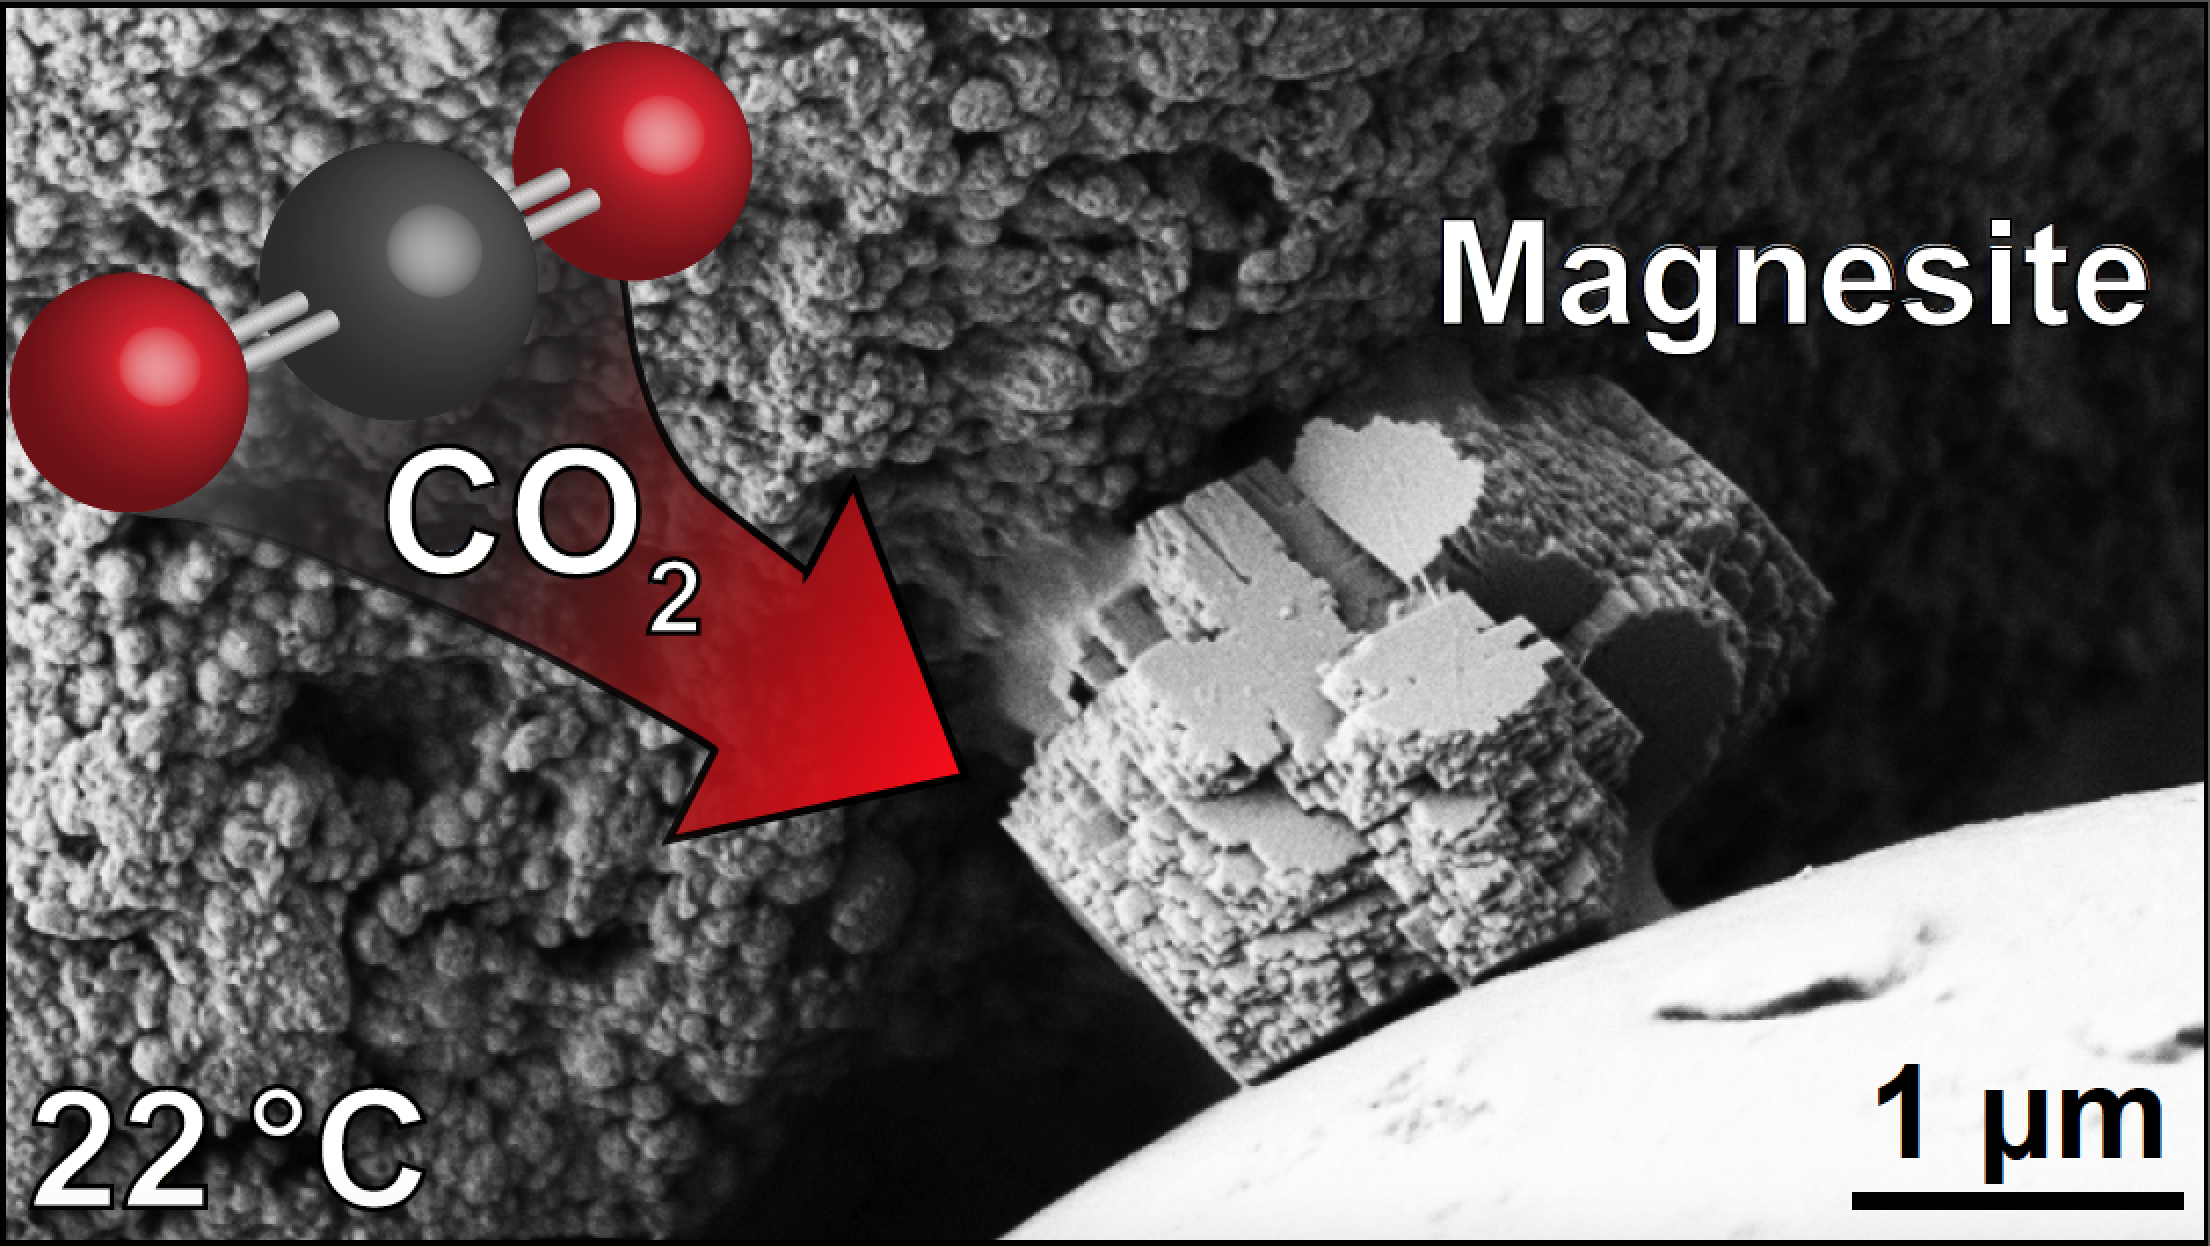 Magnesite crystal on carboxylated polystyrene sphere sequestering carbon dioxide.